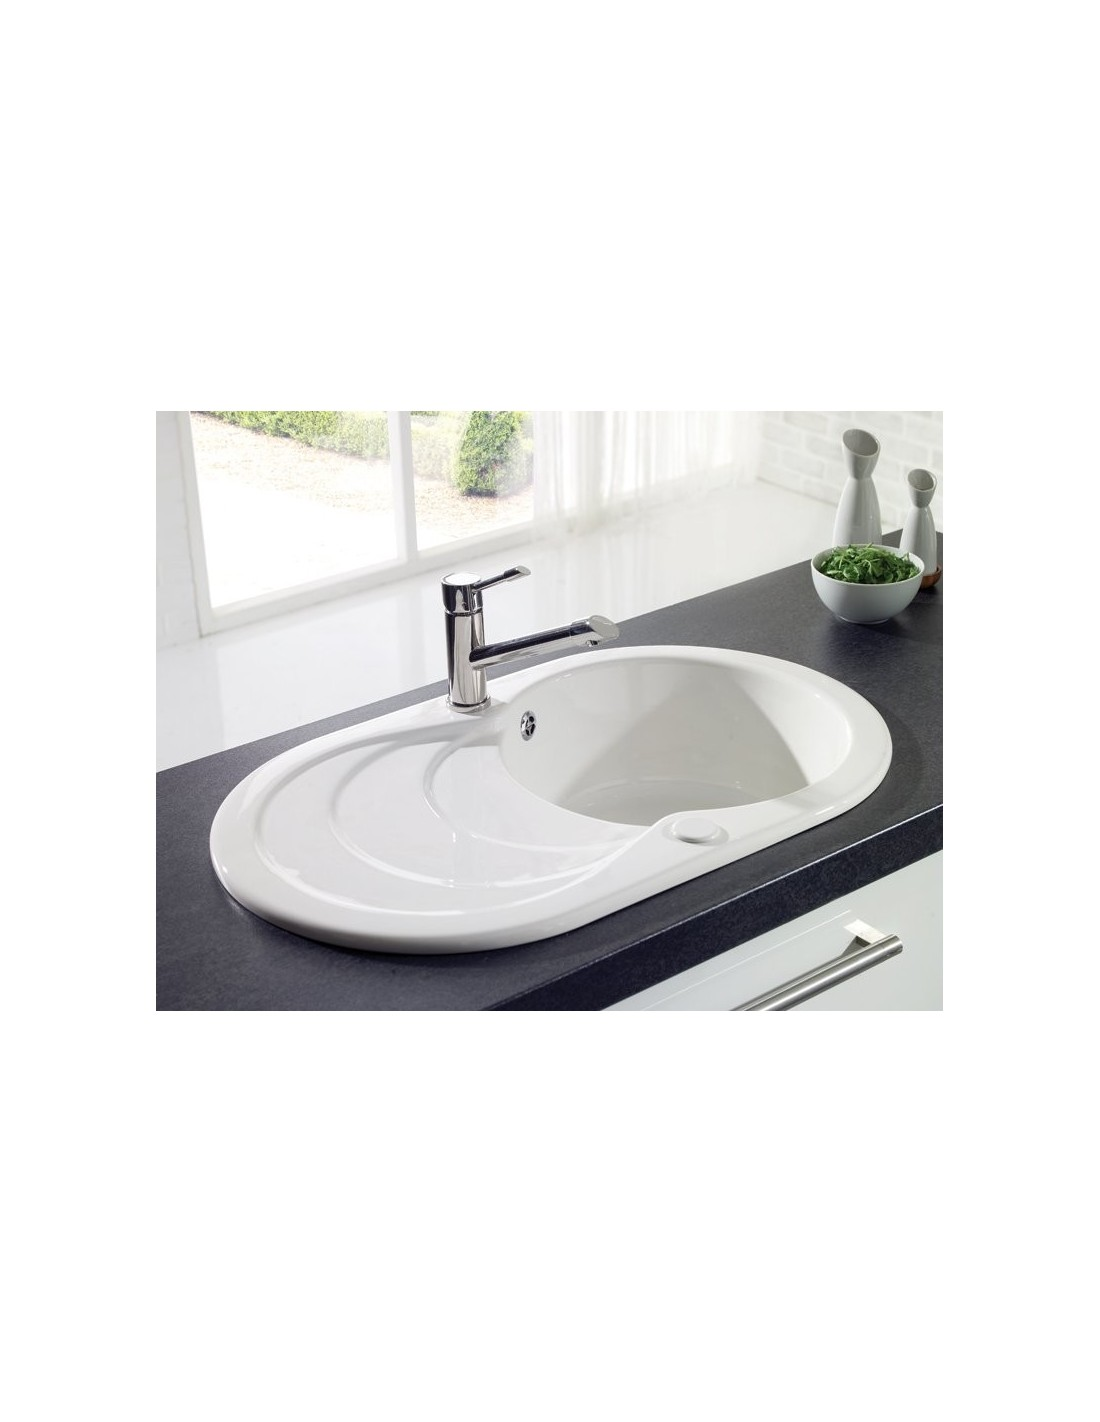 Ceramic Kitchen Sink Thomas Denby Sonnet So1b 1 Bowl Sink White Glossy